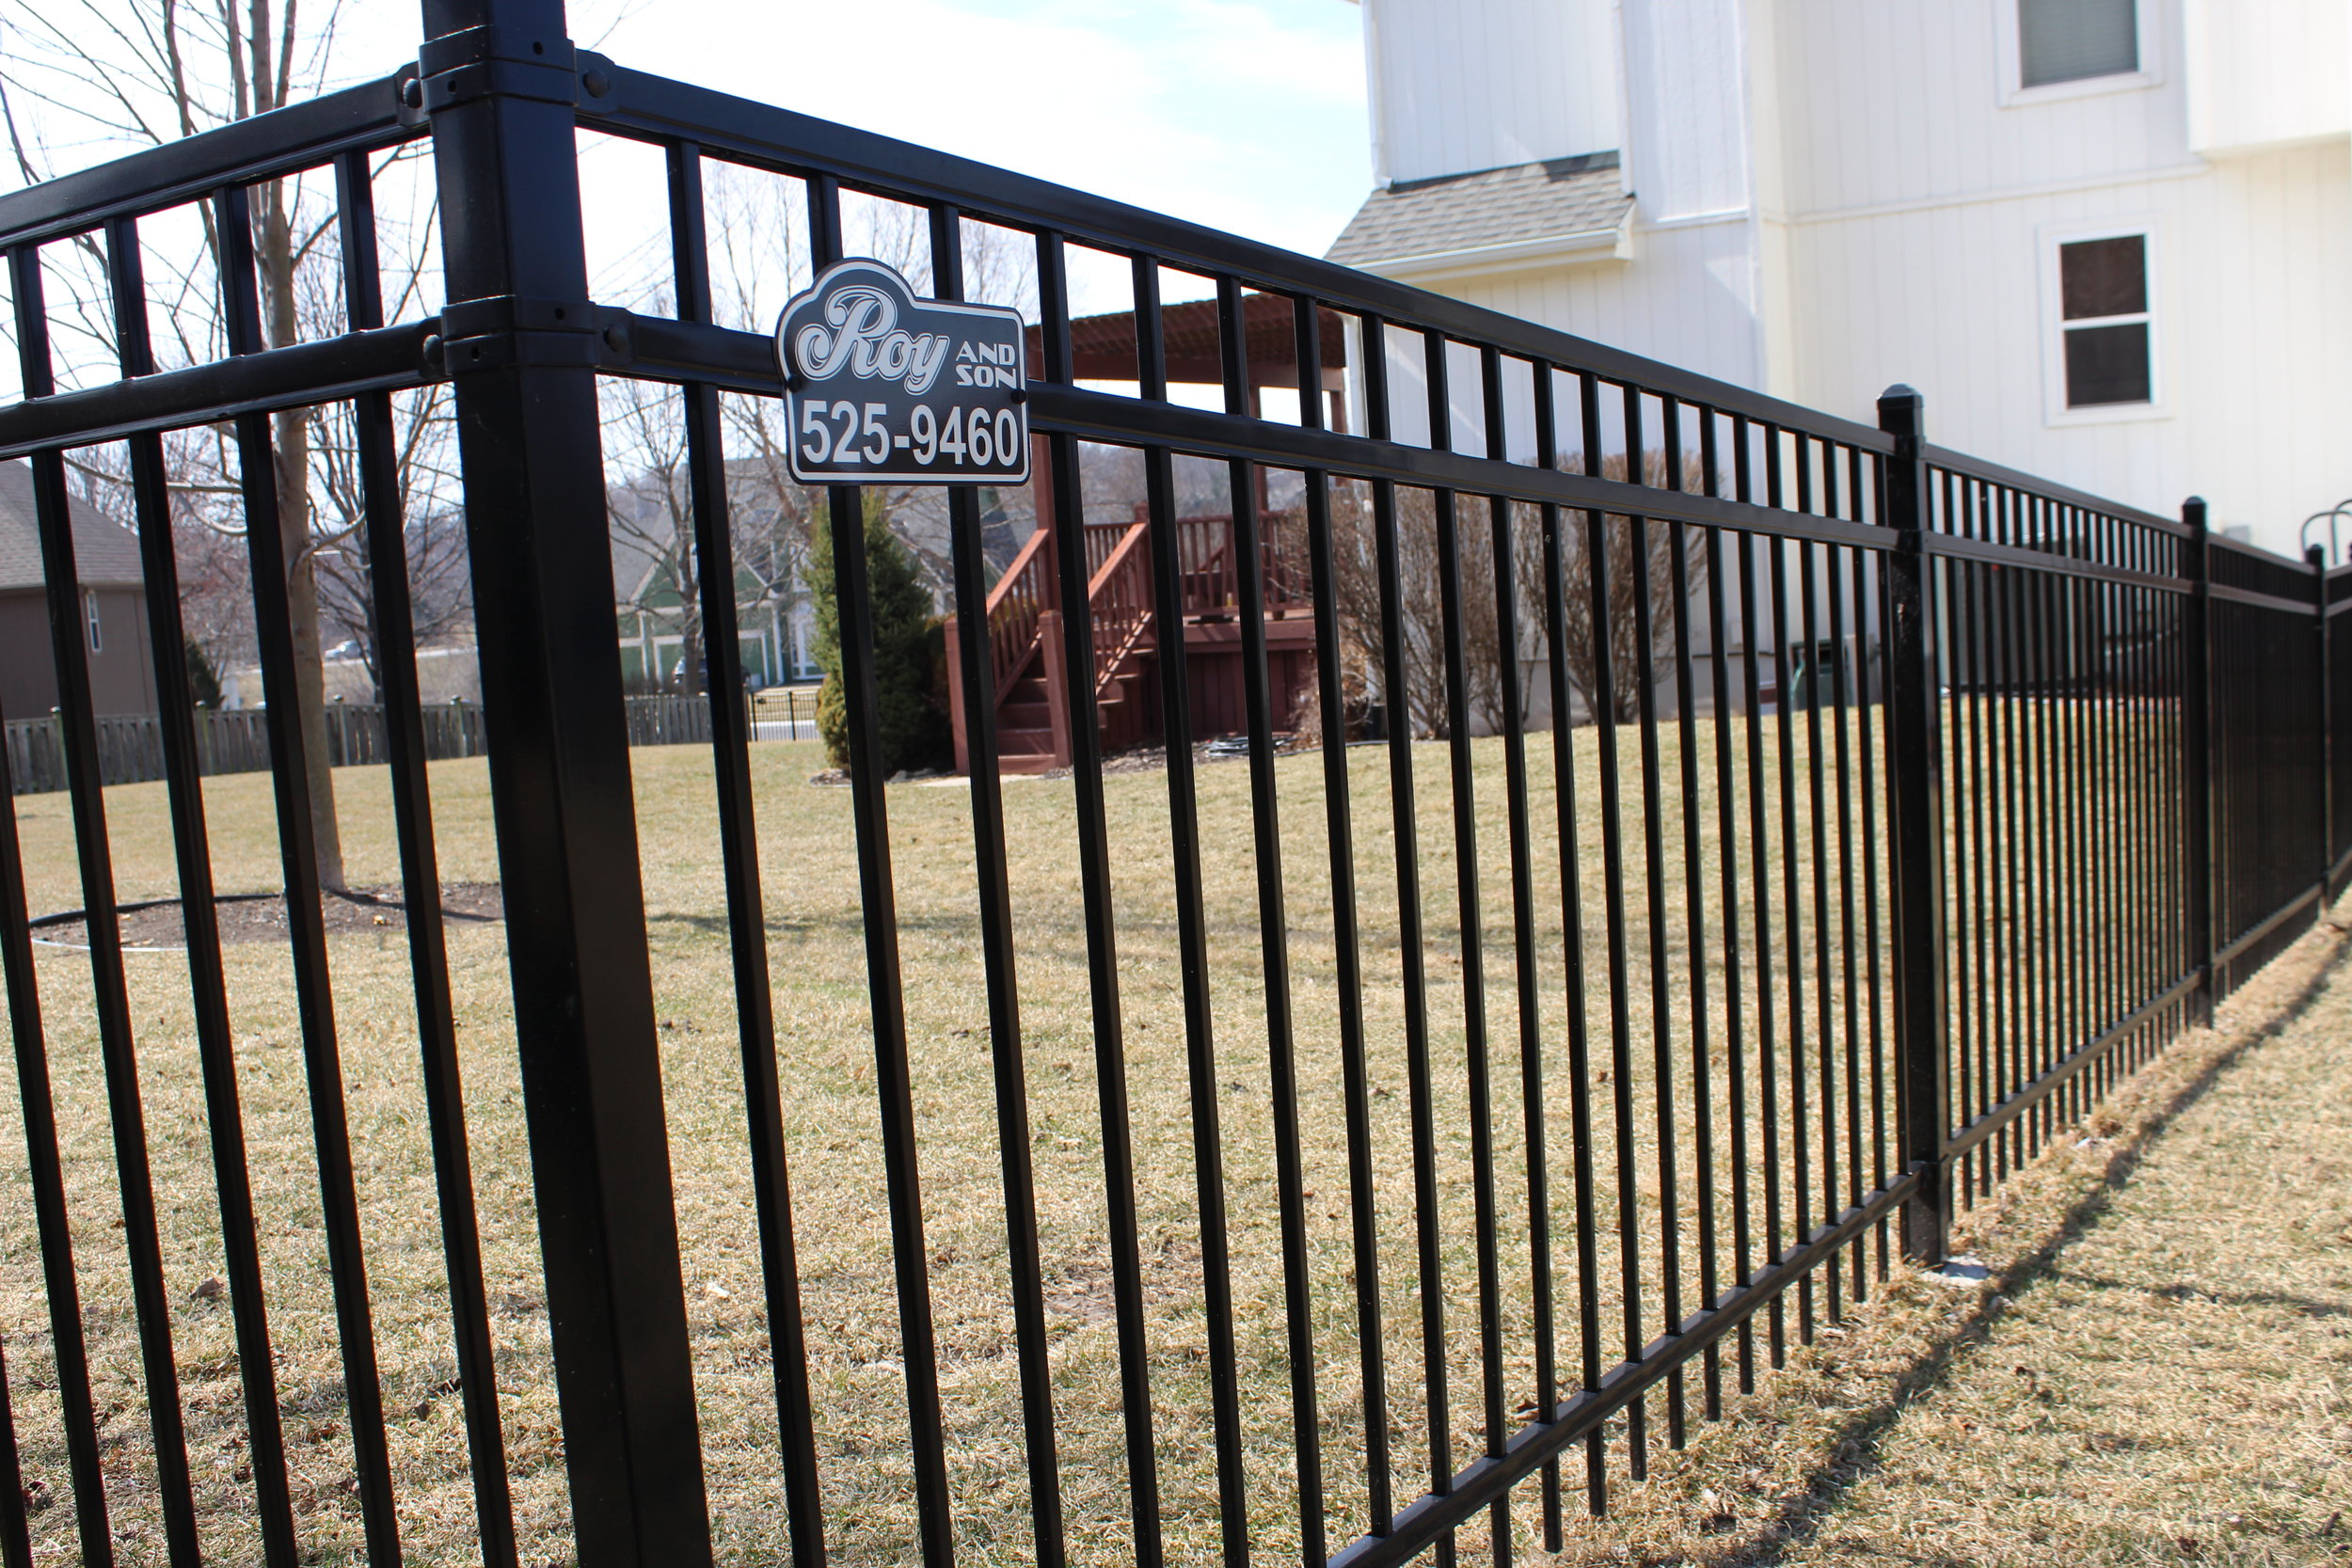 Steel and Aluminum - Metal fences are increasing in popularity due to their high curb appeal and unmatched durability. They are easy to maintain and give the owner immediate ROI (return on investment). They provide unblocked site-lines while maintaining the property's barriers and security.